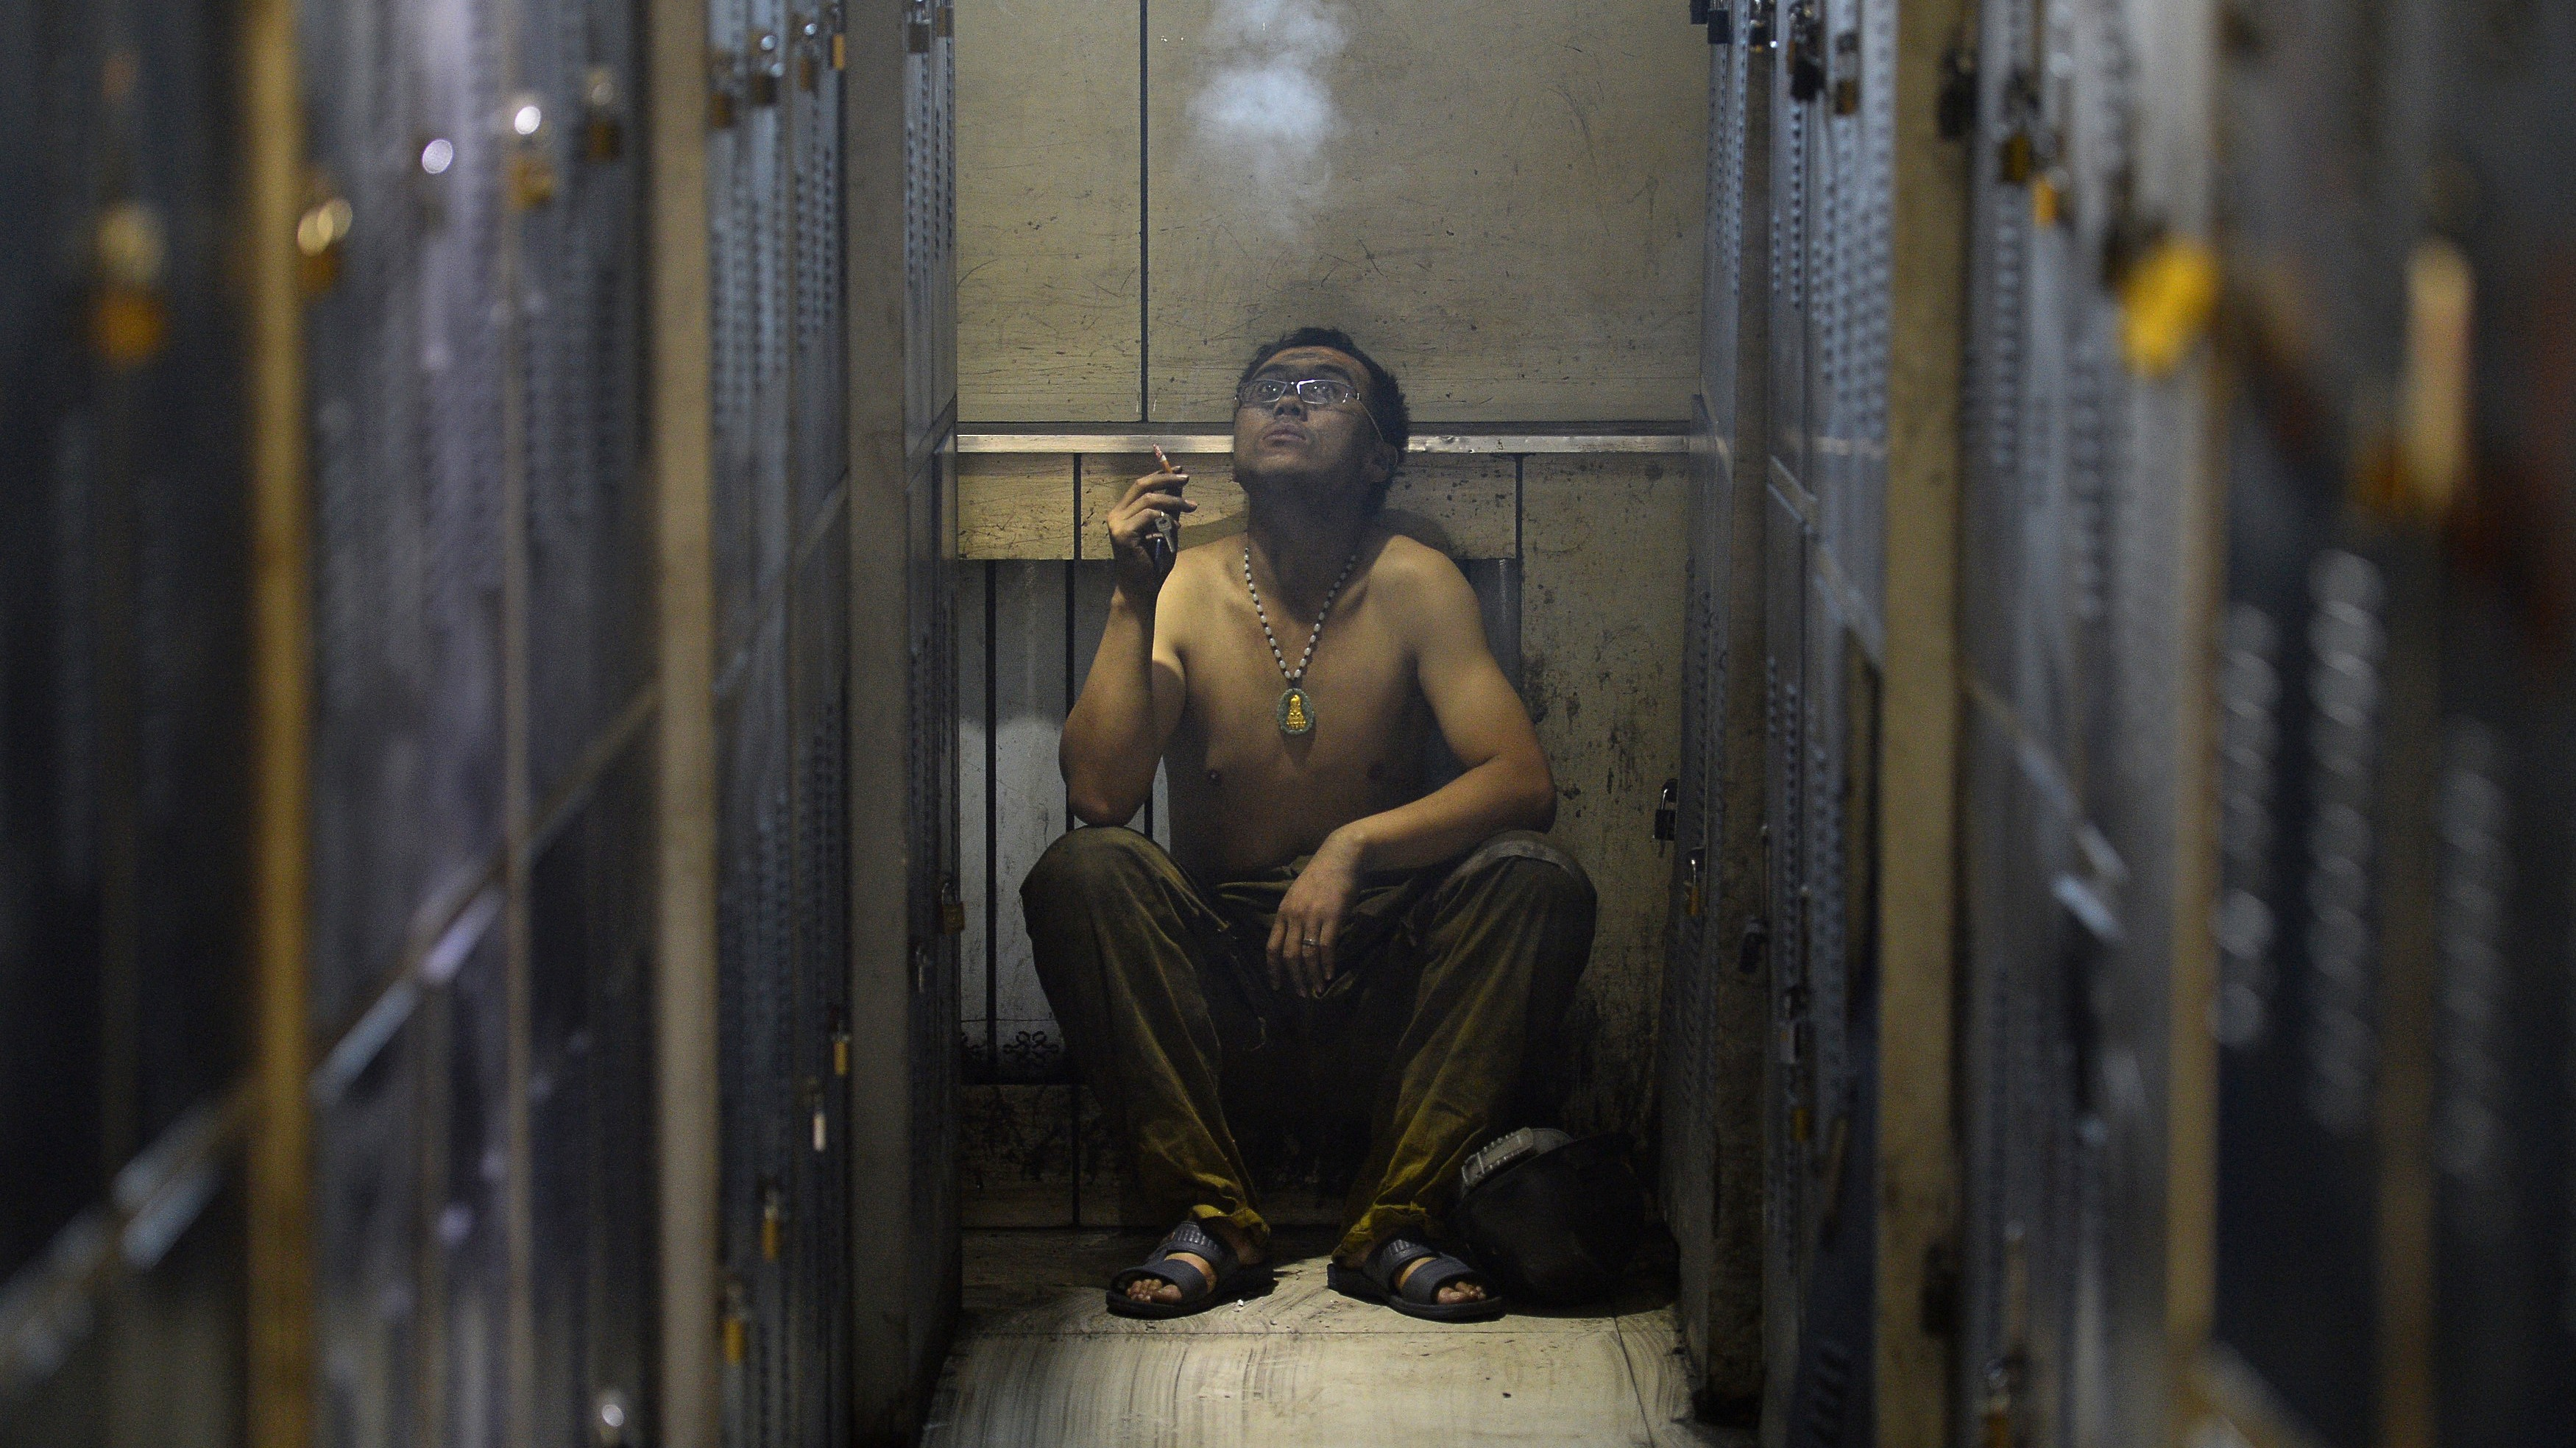 A miner smokes a cigarette next to lockers before showering during a break near a coal mine in Heshun county, Shanxi province December 5, 2014. Chinese coal spot prices are being raised in a domestic market struggling to recover from seven-year lows, desperate for an edge in annual negotiations to supply power plants, key buyers in the world's biggest consumer of coal, industry sources say. REUTERS/Stringer (CHINA - Tags: BUSINESS ENERGY ENVIRONMENT SOCIETY) CHINA OUT. NO COMMERCIAL OR EDITORIAL SALES IN CHINA - RTR4GTCQ